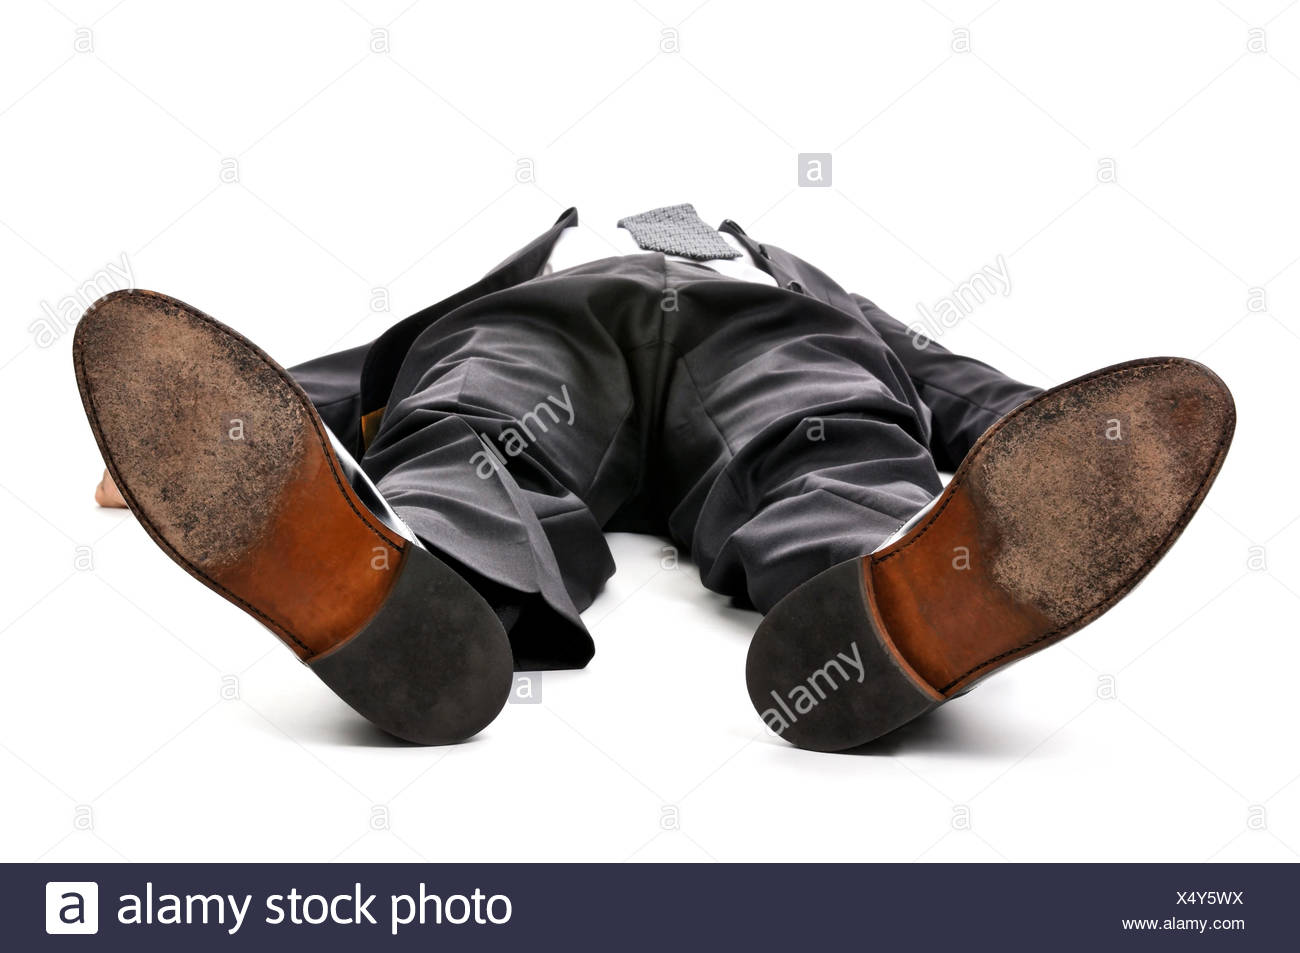 legs shoes feet - Stock Image